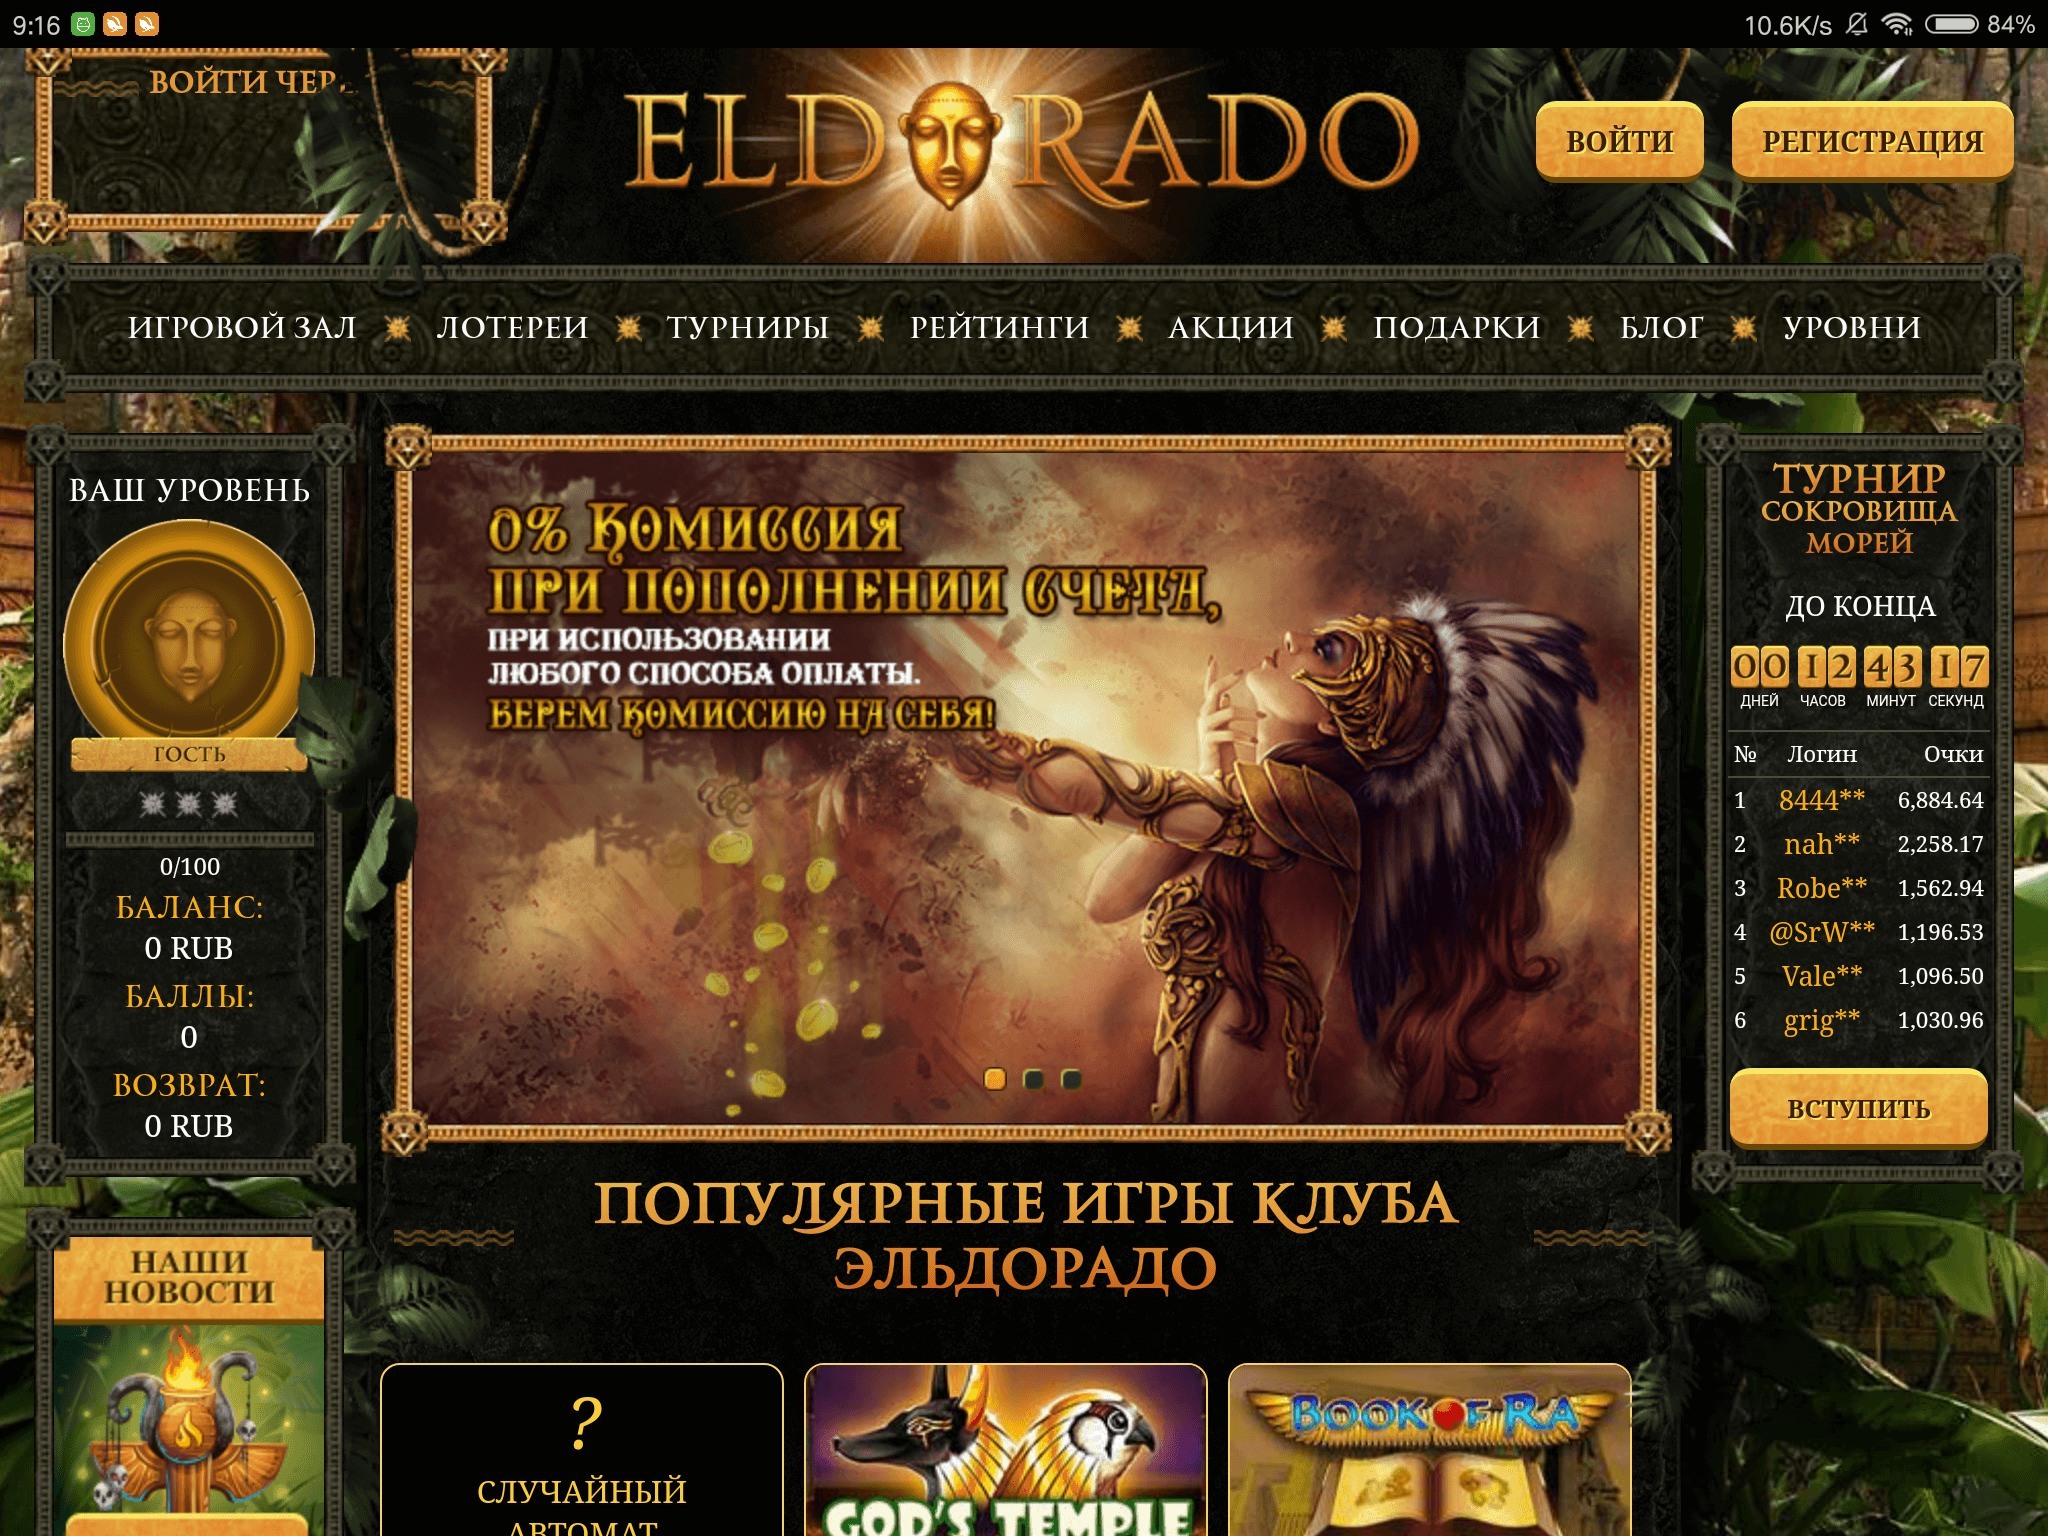 Eldorado club casino